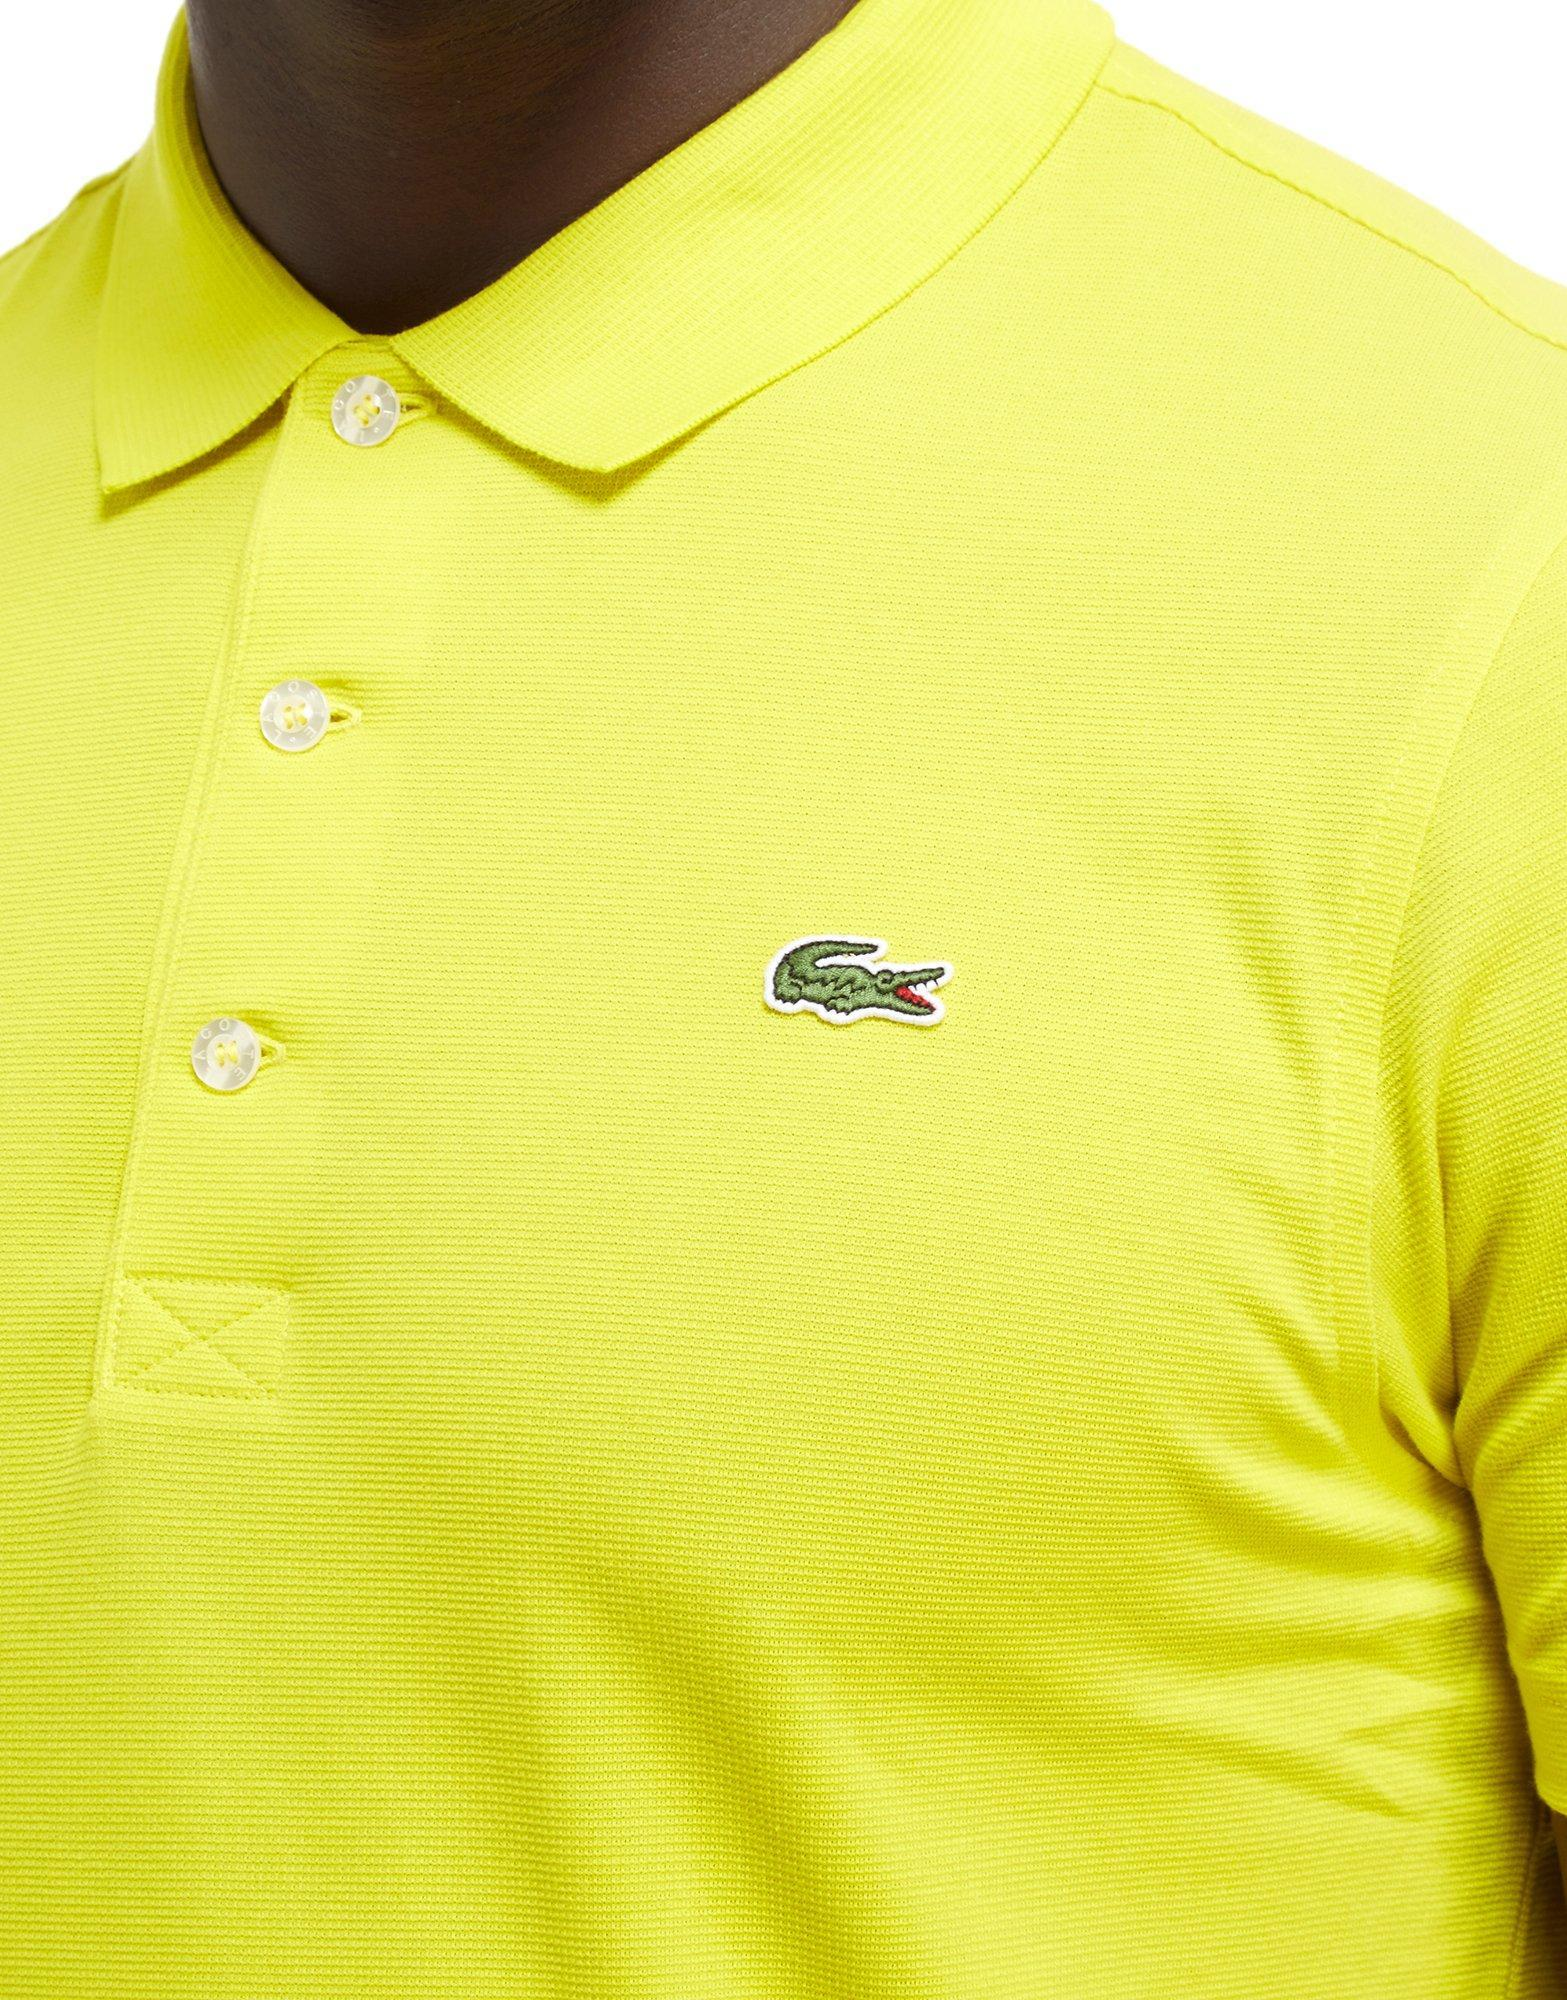 Lacoste alligator polo shirt in yellow for men lyst for Lacoste shirts with big alligator